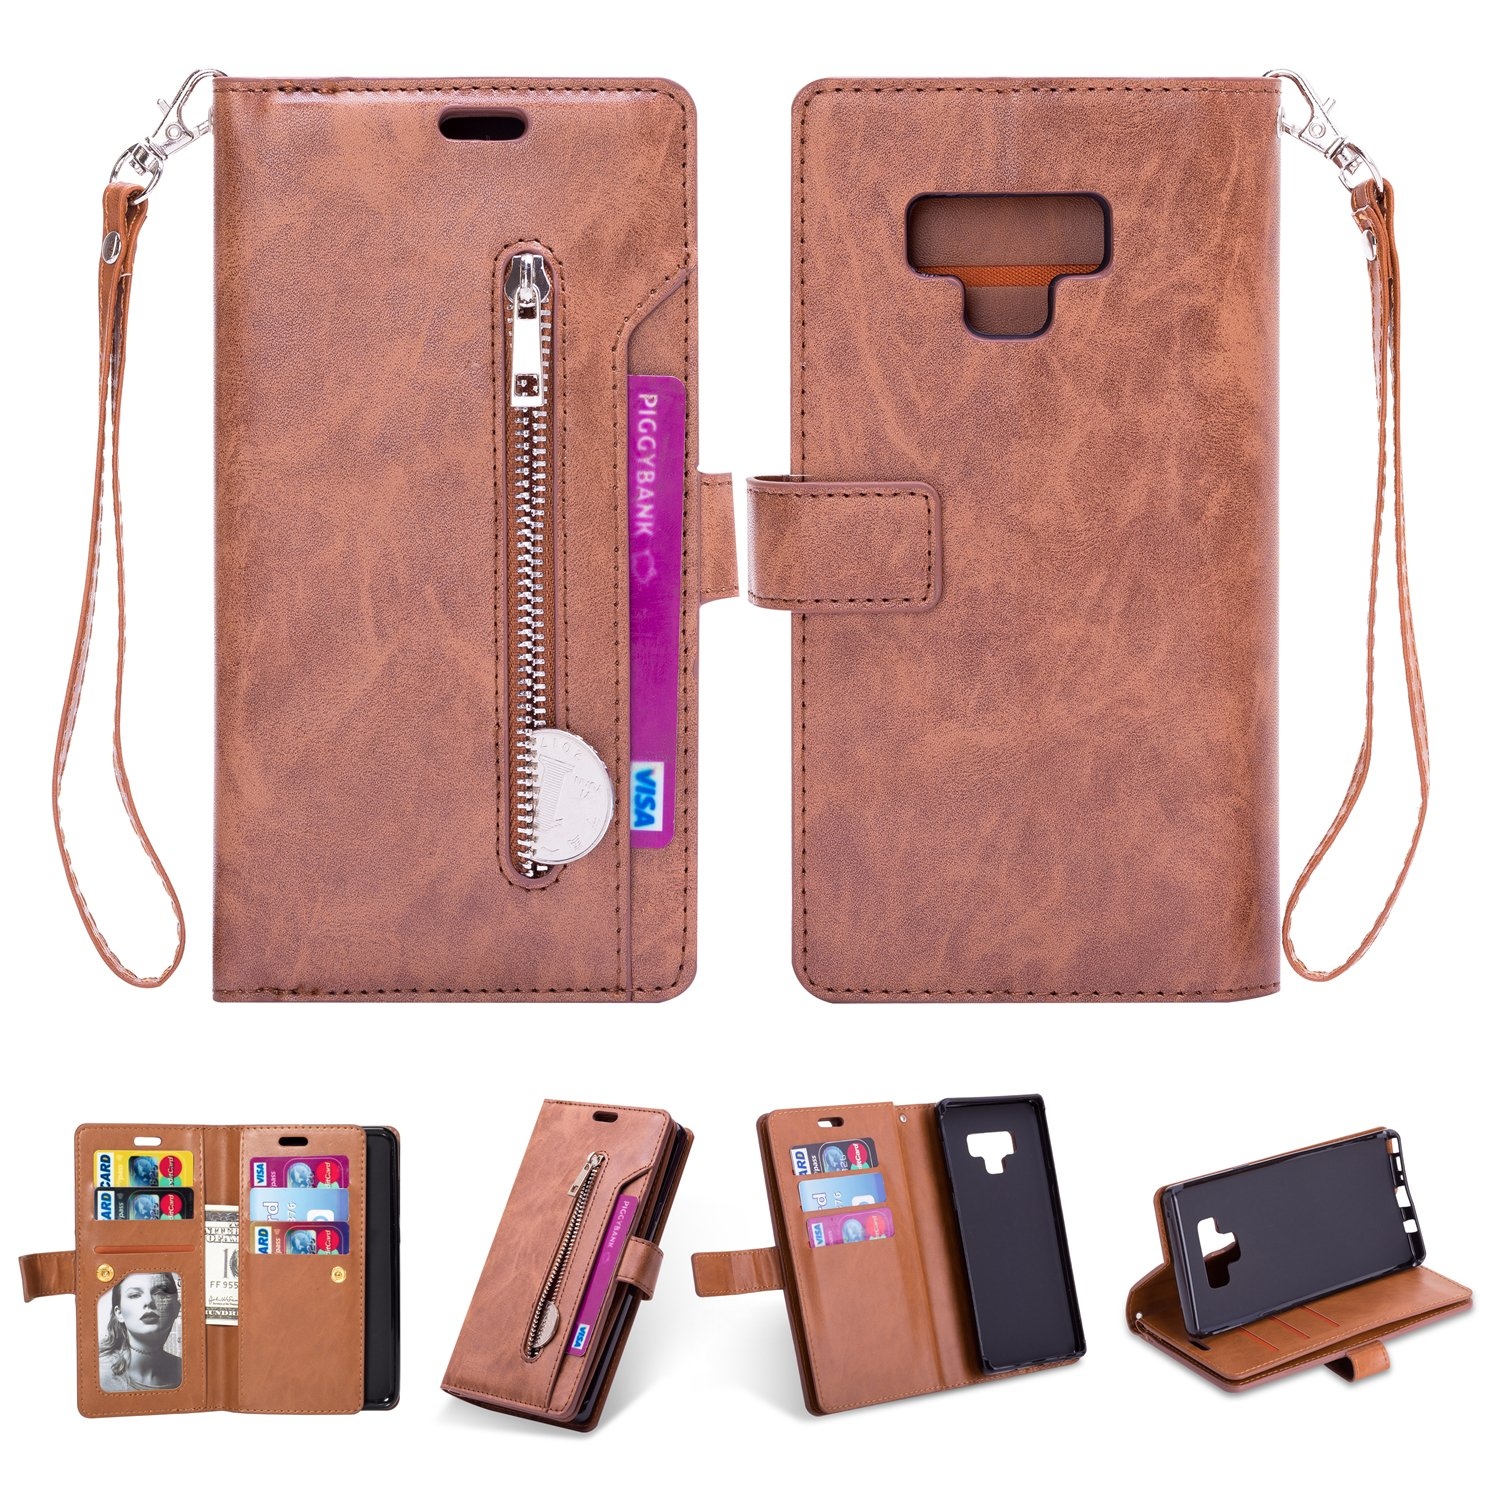 FuriGer Case for Samsung Galaxy Note 9, Premium PU Leather Wallet Case, Zipper Wallet Case,Magnetic Closure, Detachable Magnetic Case with Card Slots for Samsung Galaxy Note 9 - Brown